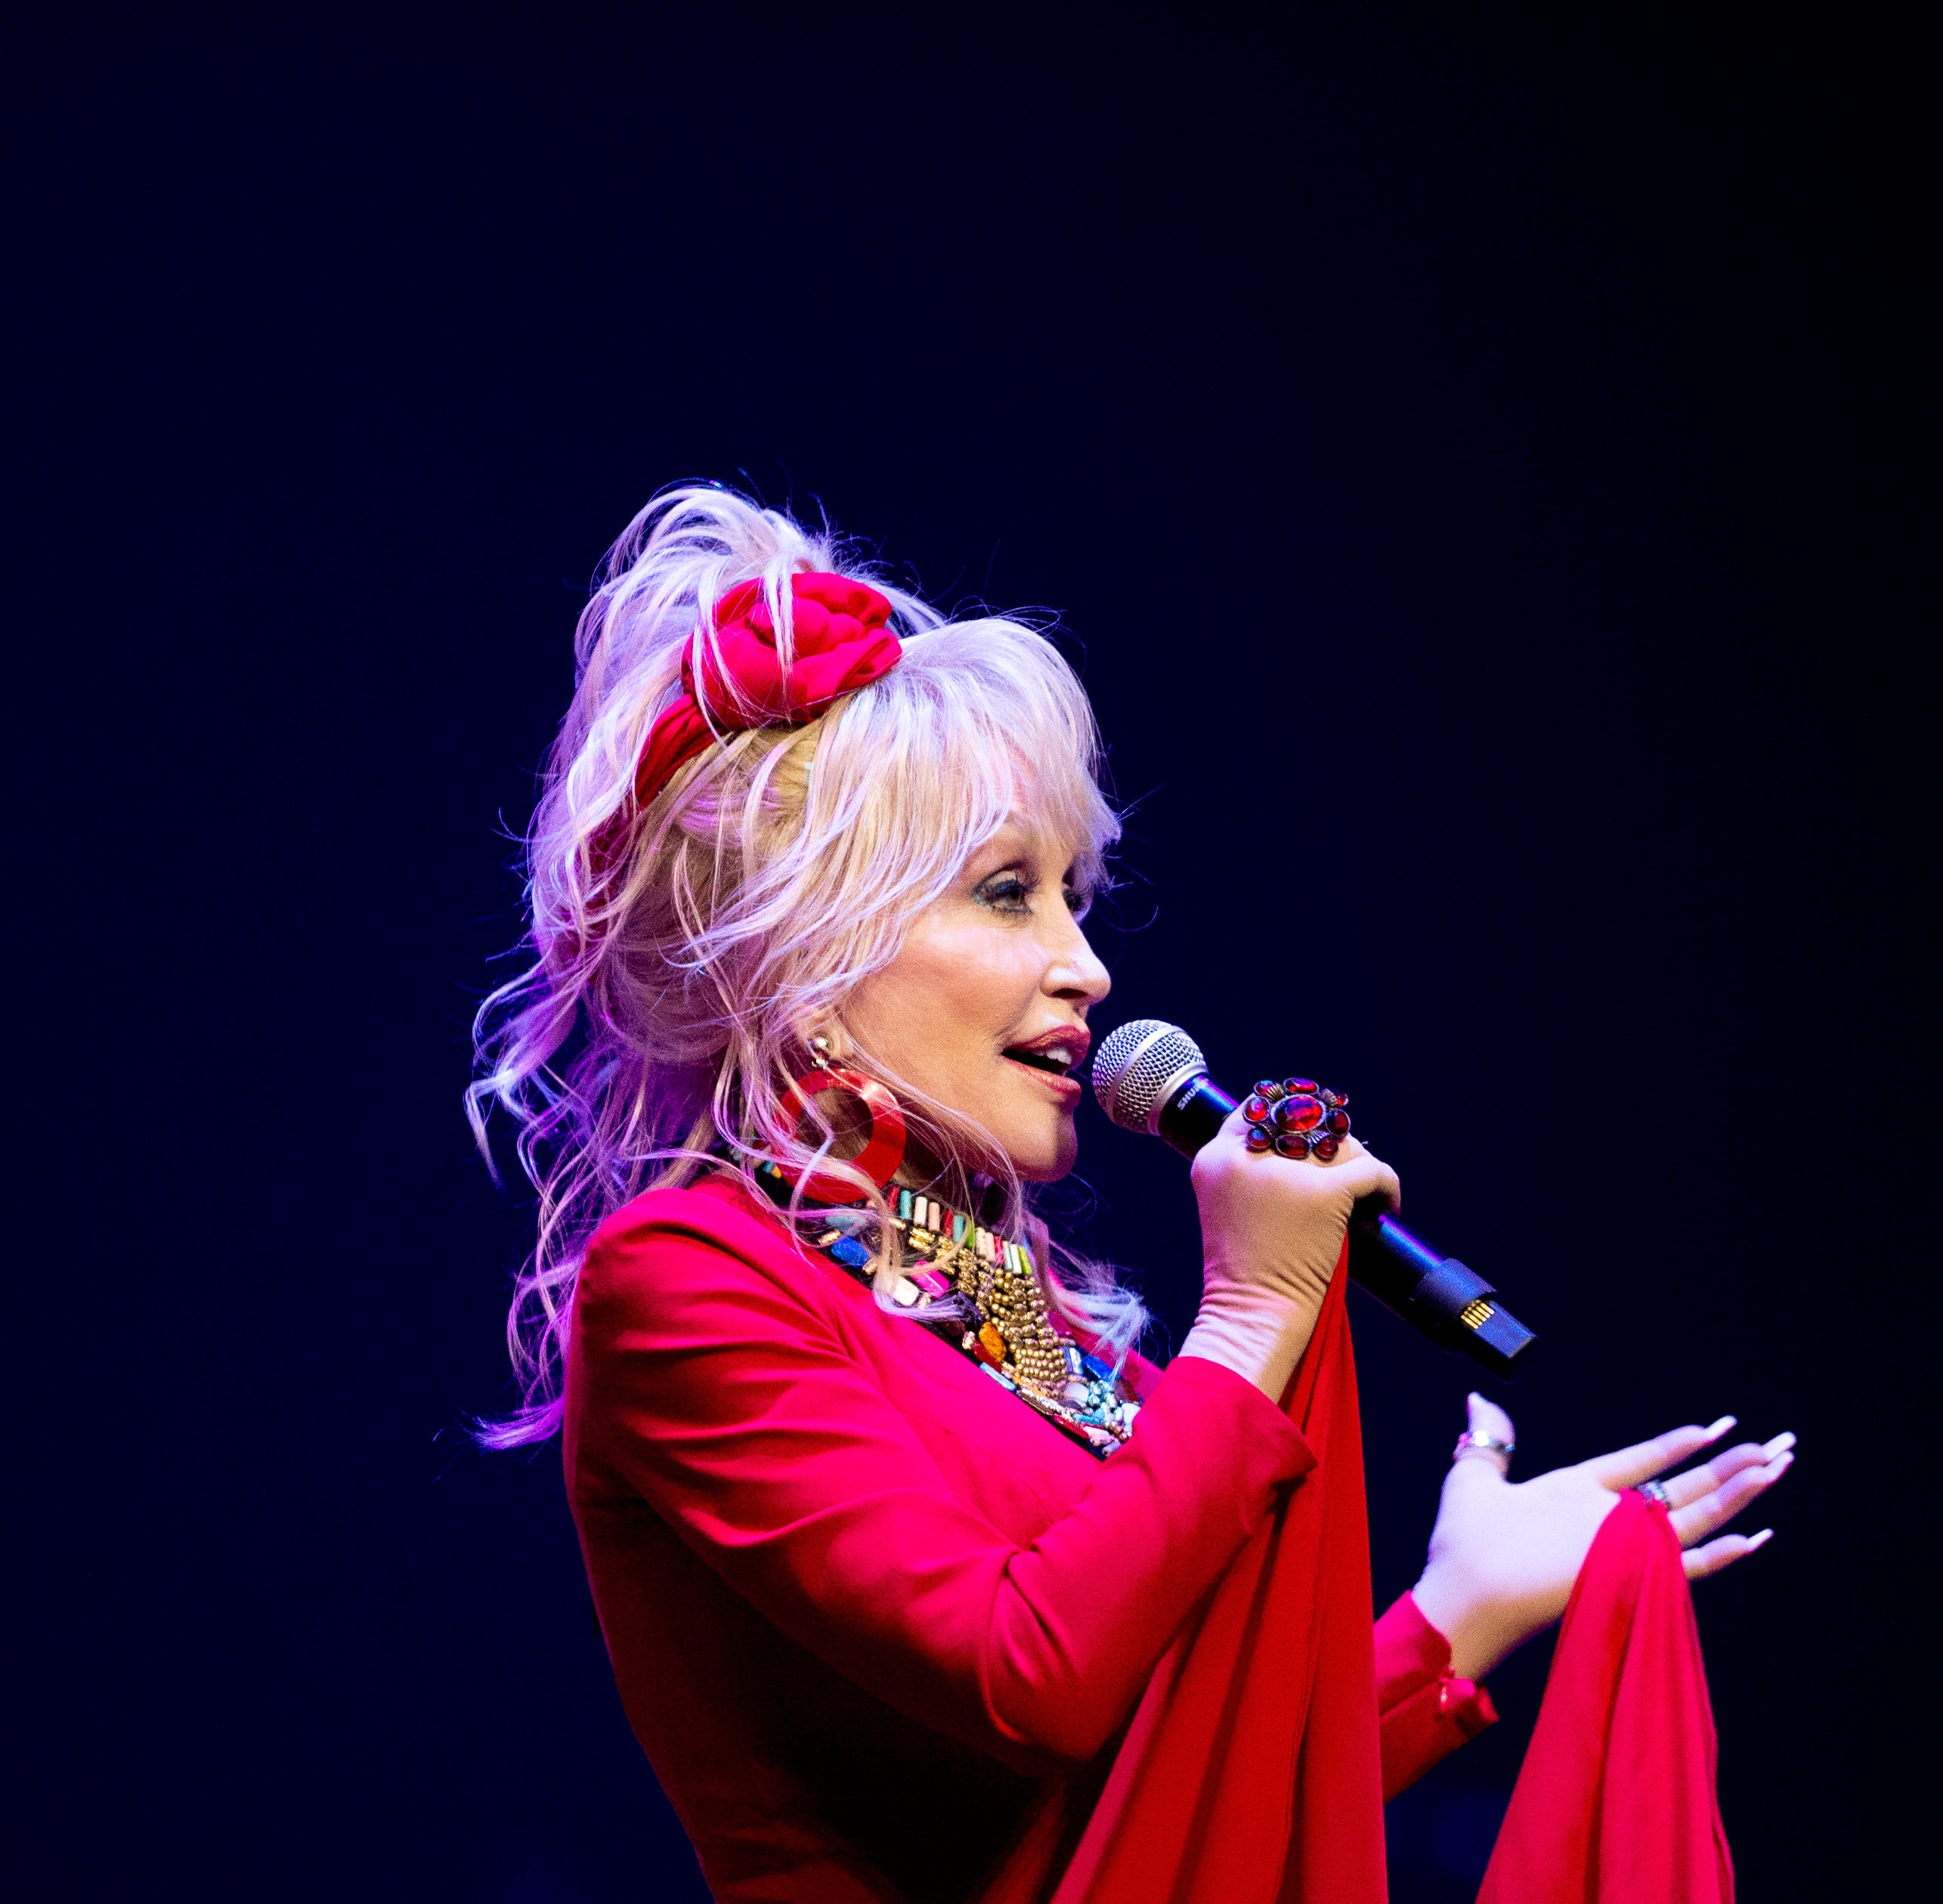 Dolly Parton's 'Heartstrings' to debut this fall on Netflix, '9 to 5' a 'work in progress'